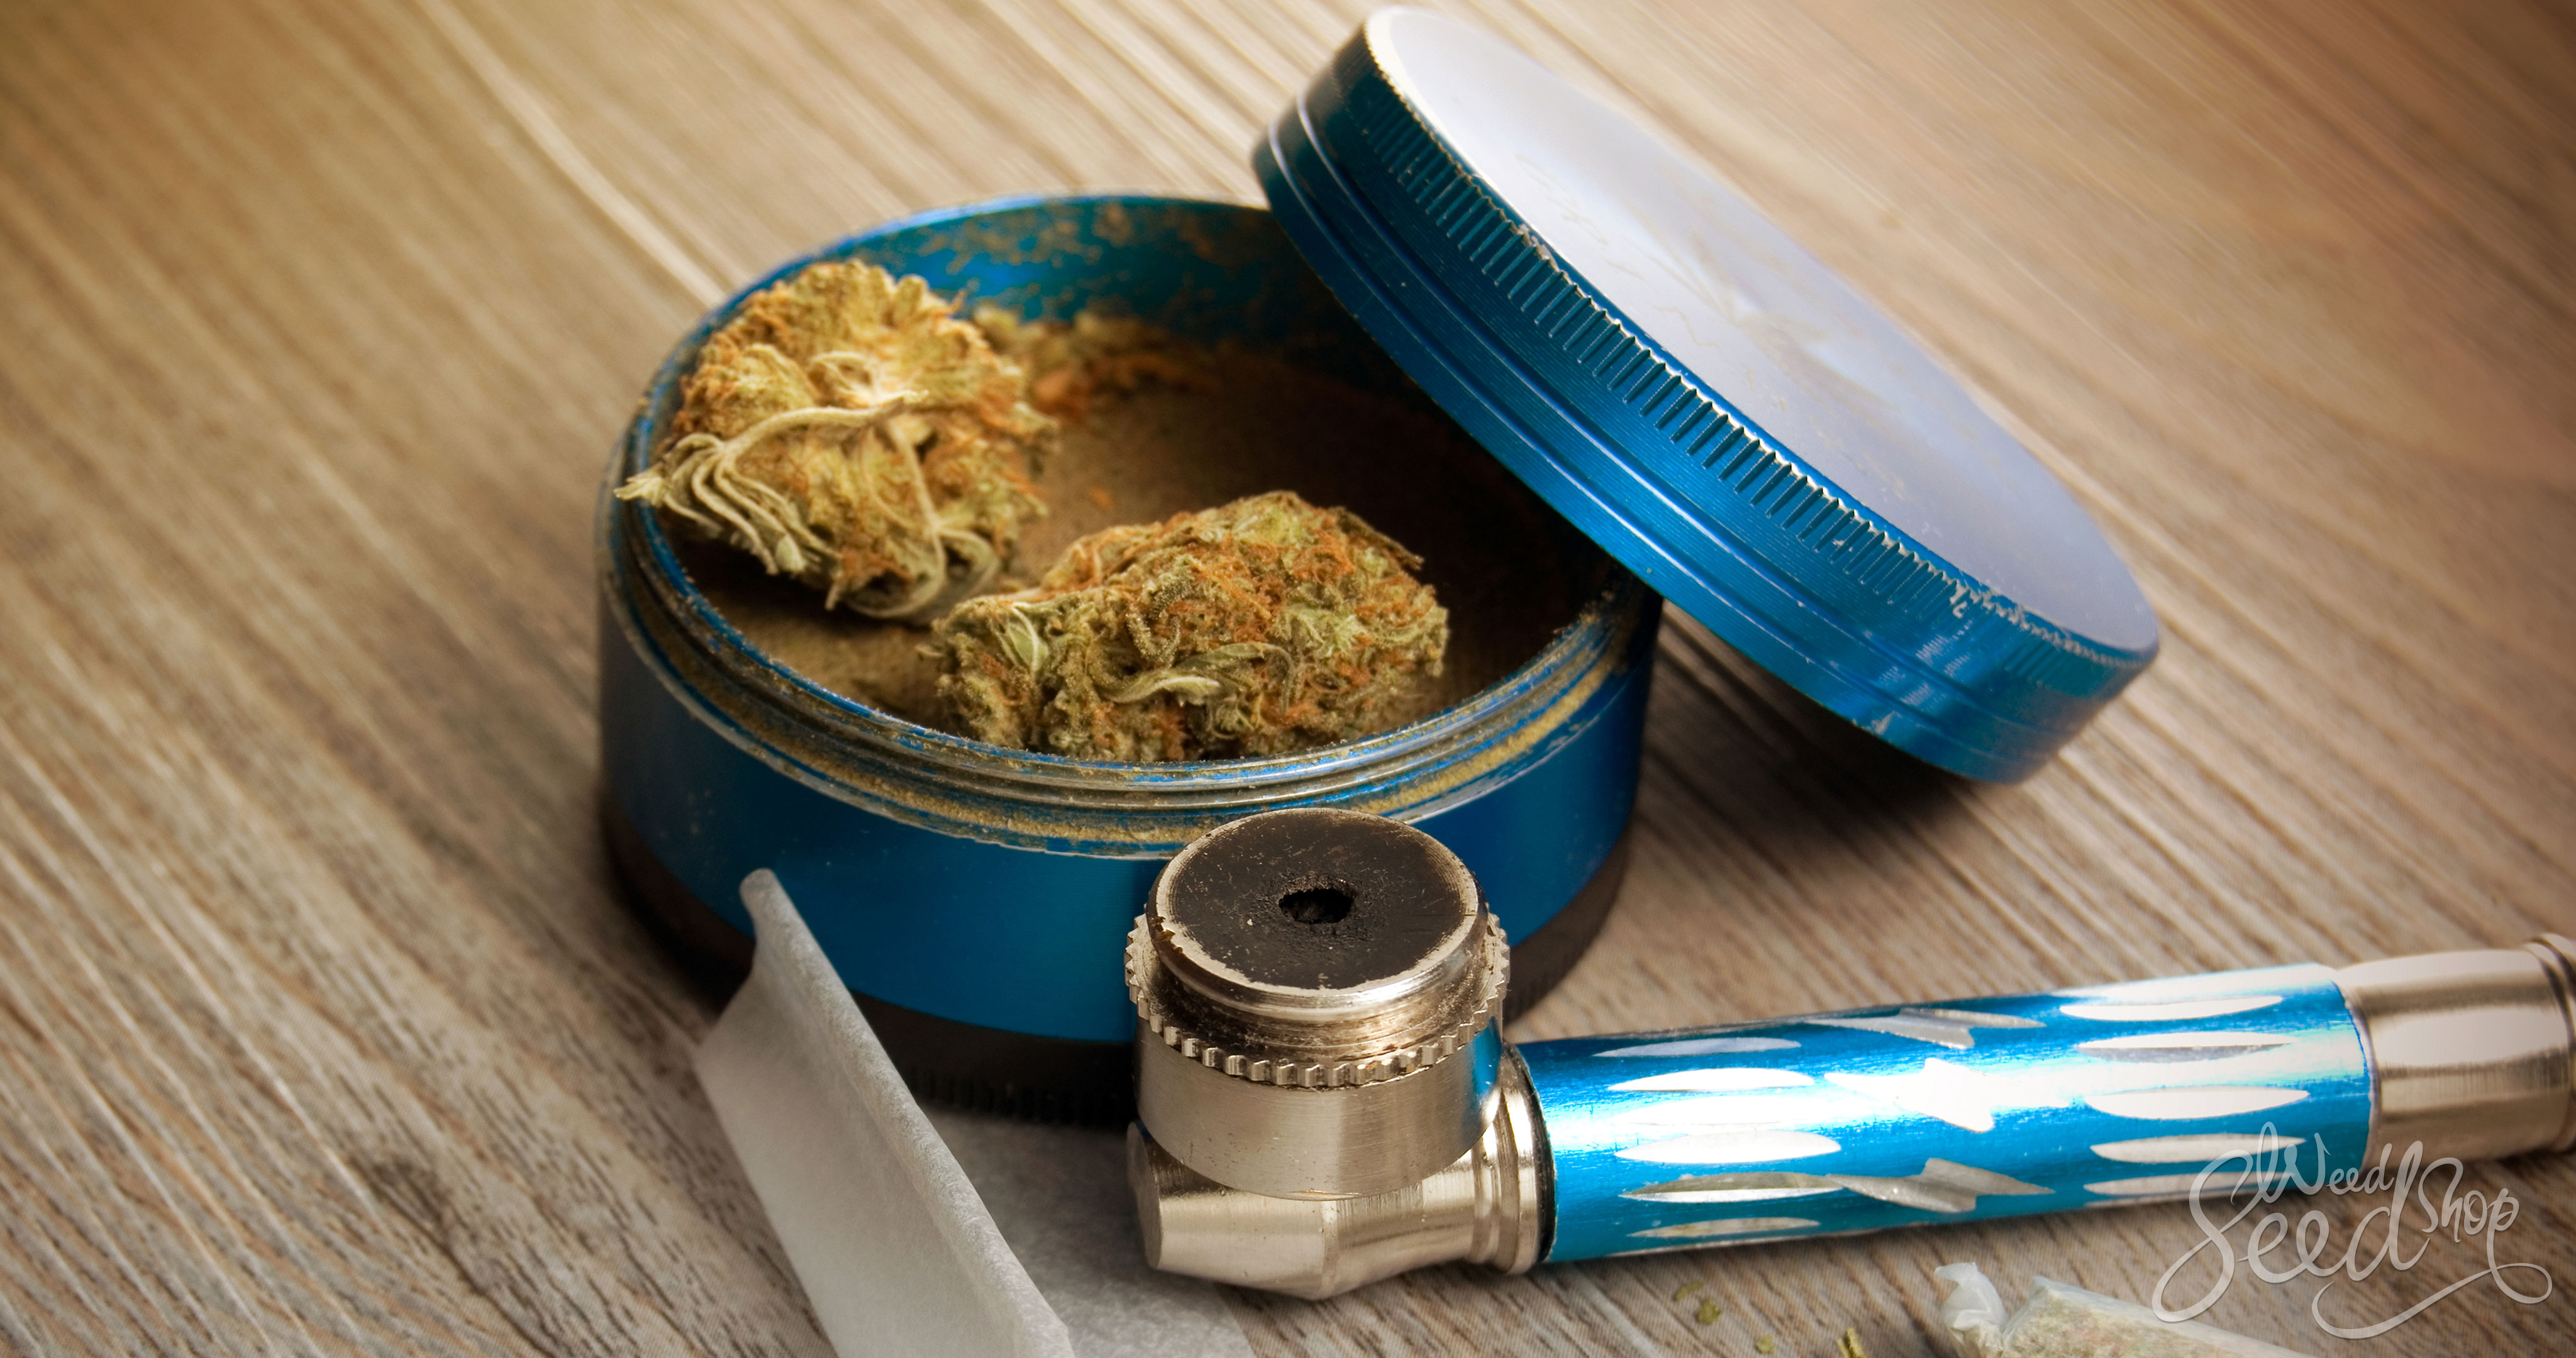 Ultimate Stoner Survival Kit: 11 Must-Haves – WeedSeedShop